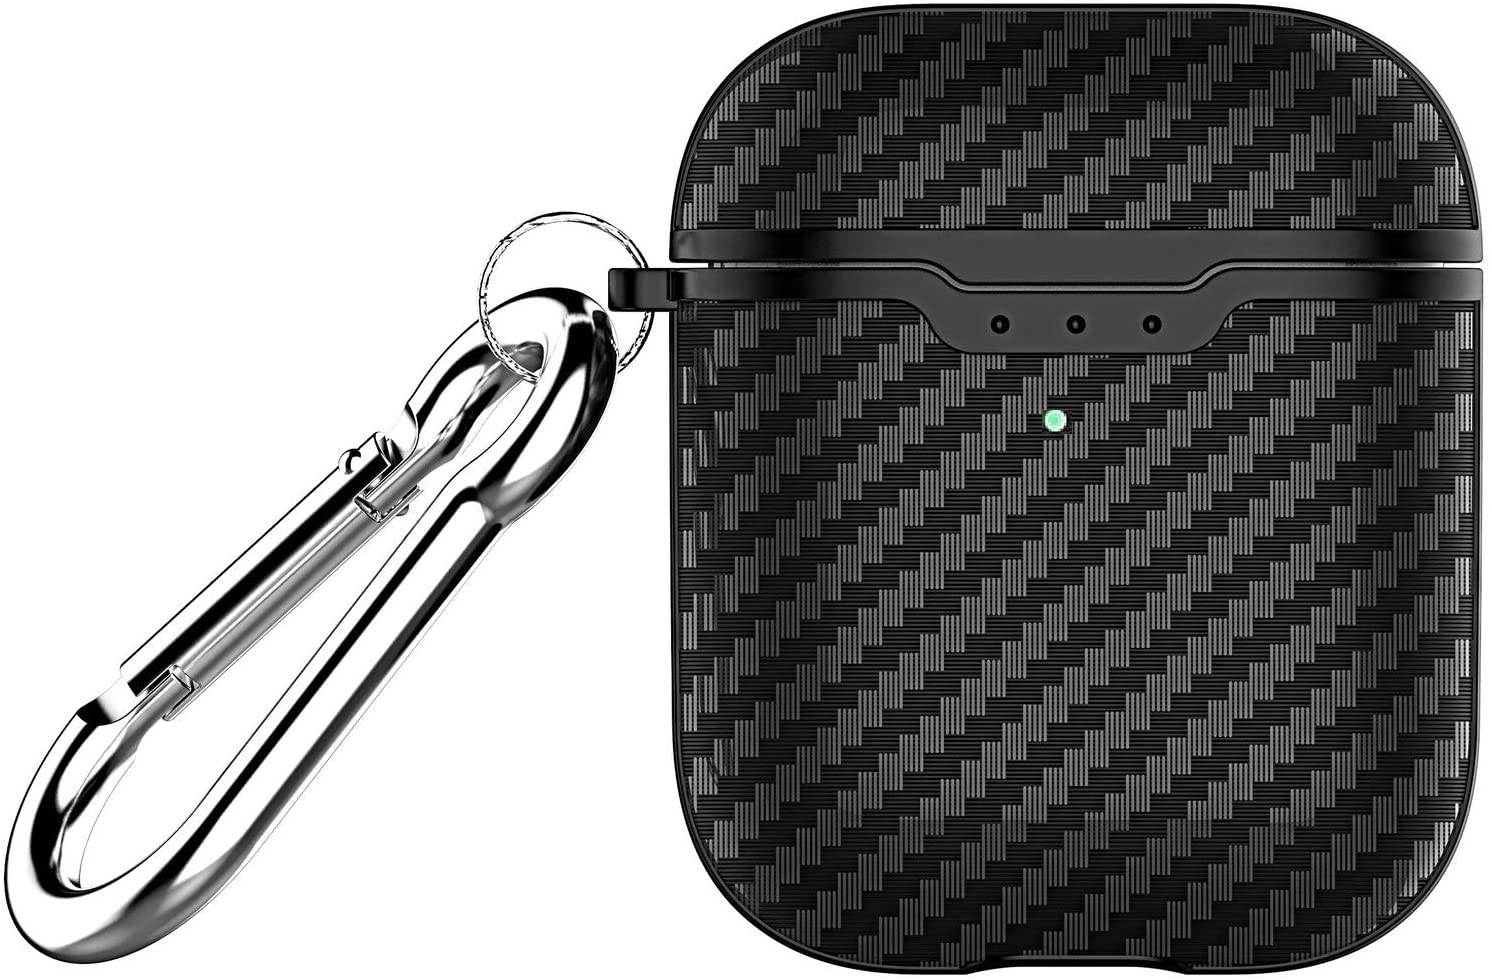 Xuyoz Case for Airpods, Cute Carbon Fiber Texture AirPods Protective Cases Shockproof Skin Cover for Men Women Compatible with AirPods 1&2 Charging Case with Keychain [Front LED Visible], Black